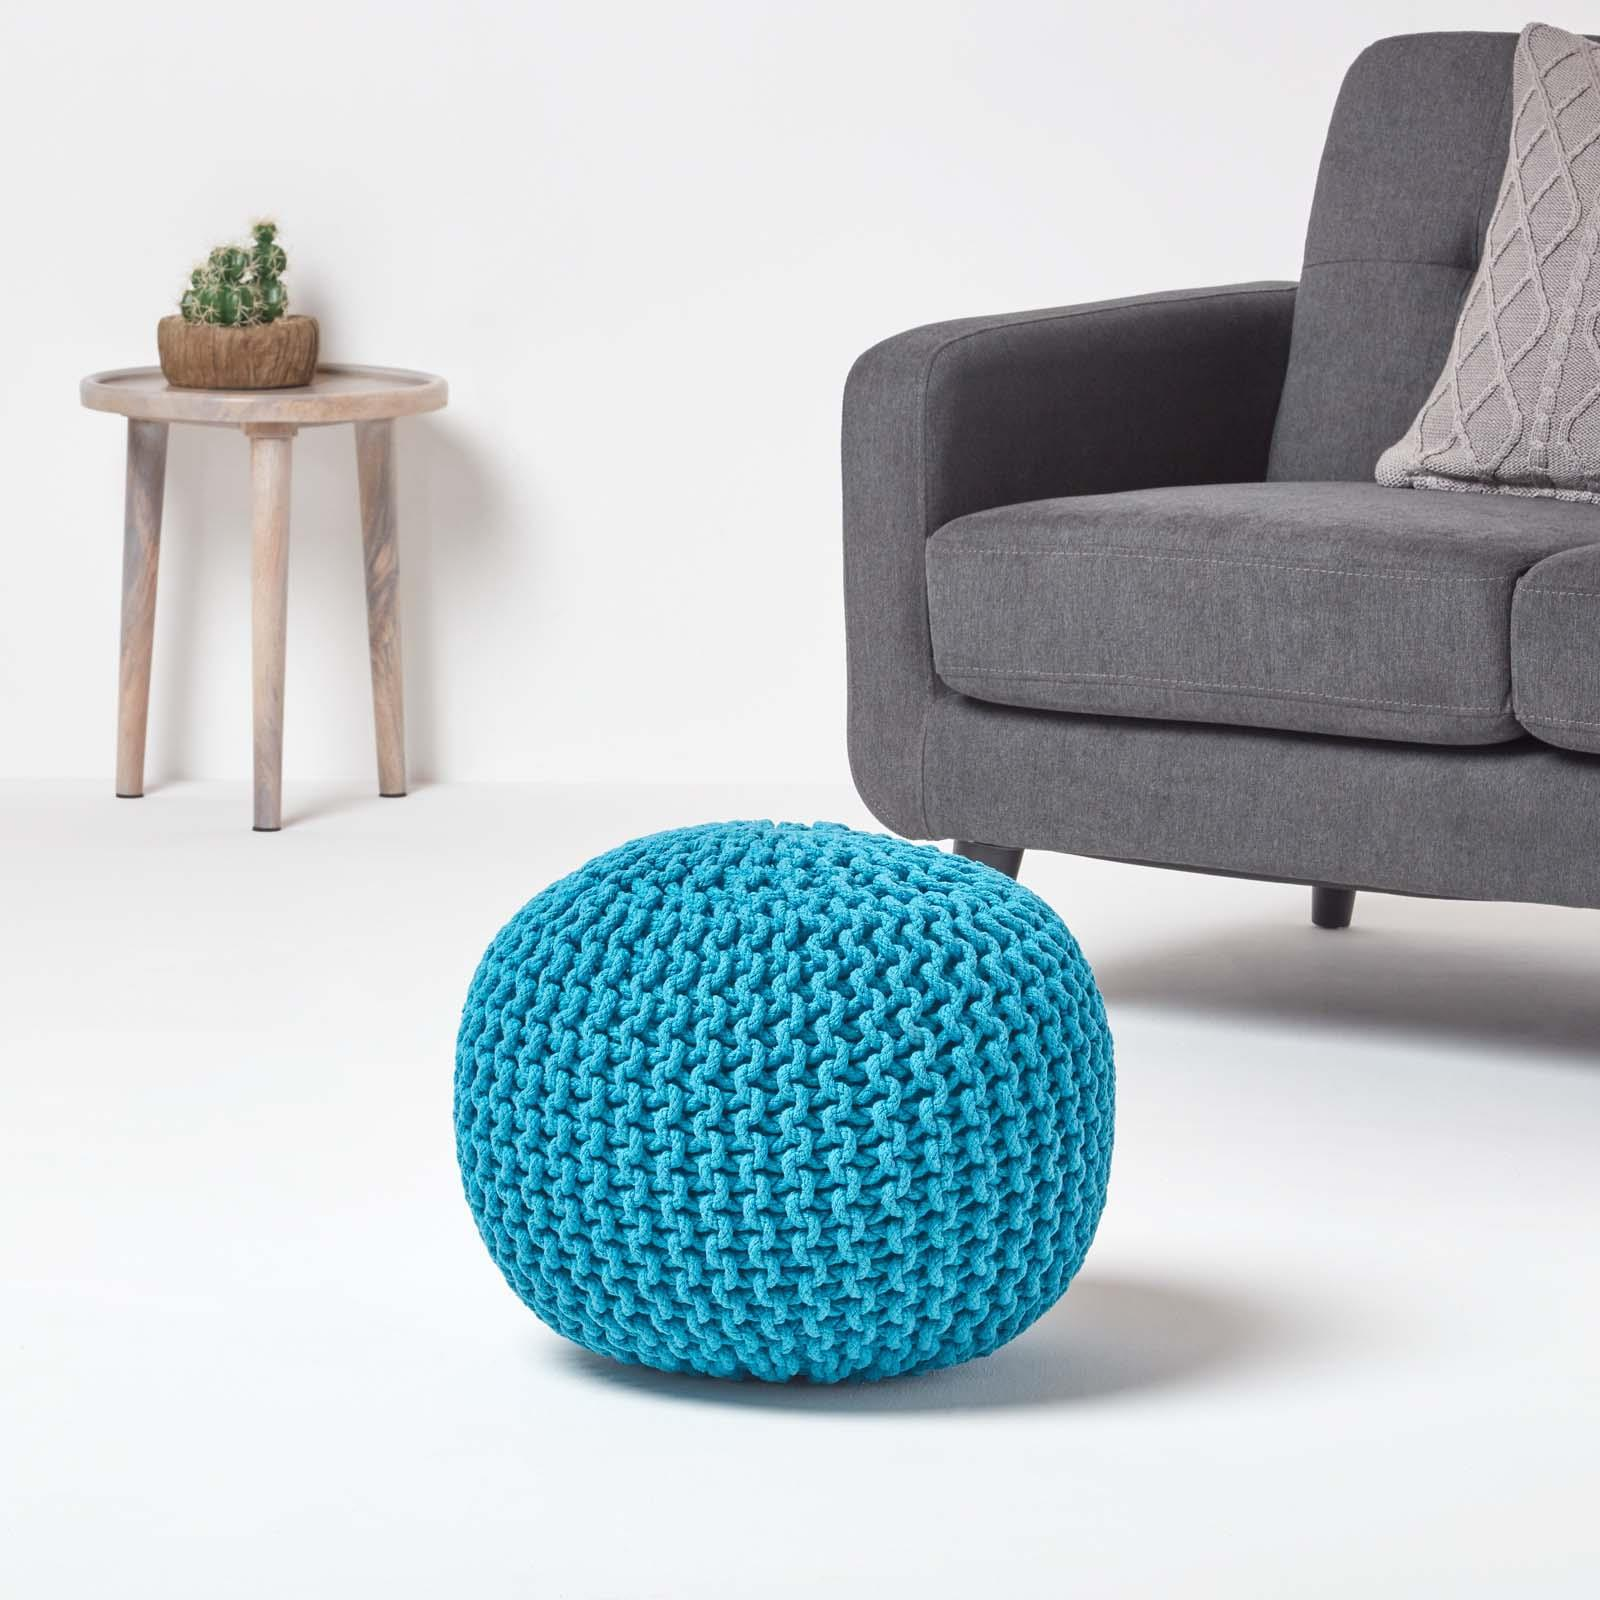 Hand-Knitted-100-Cotton-Pouffes-Round-Sphere-Or-Cube-Square-Chunky-Footstools thumbnail 187